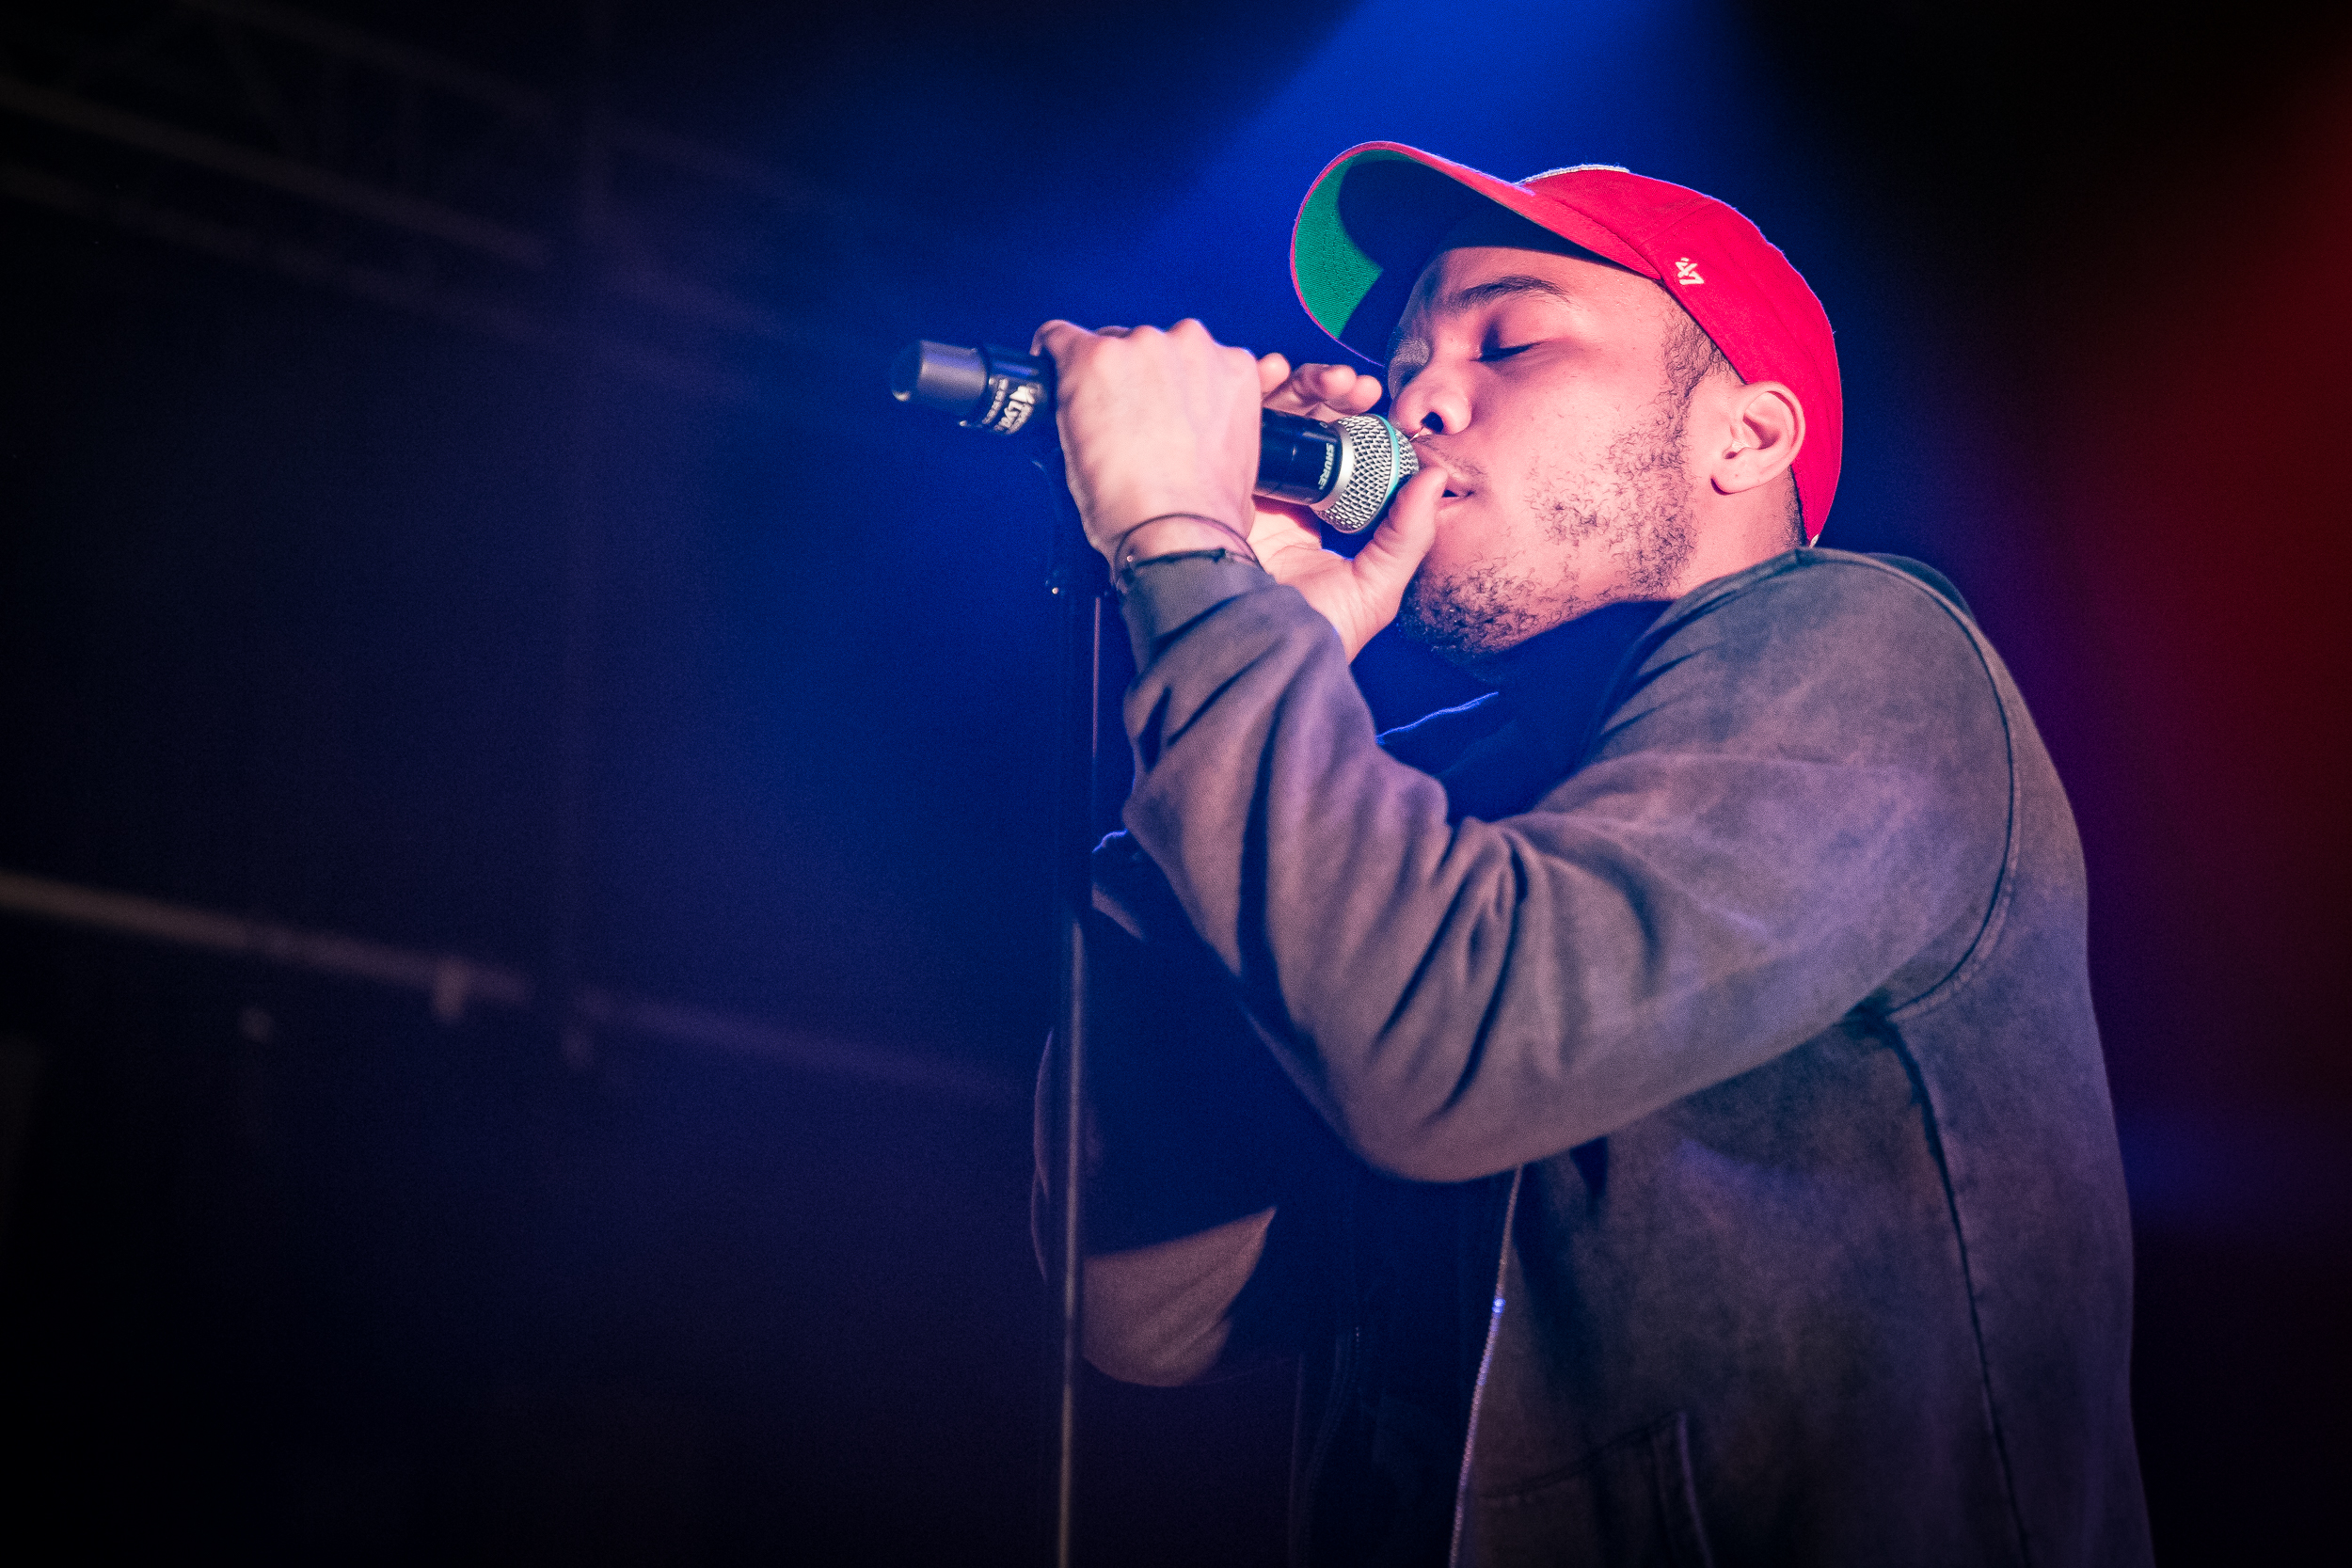 Anderson .Paak at Parkteatret, Oslo